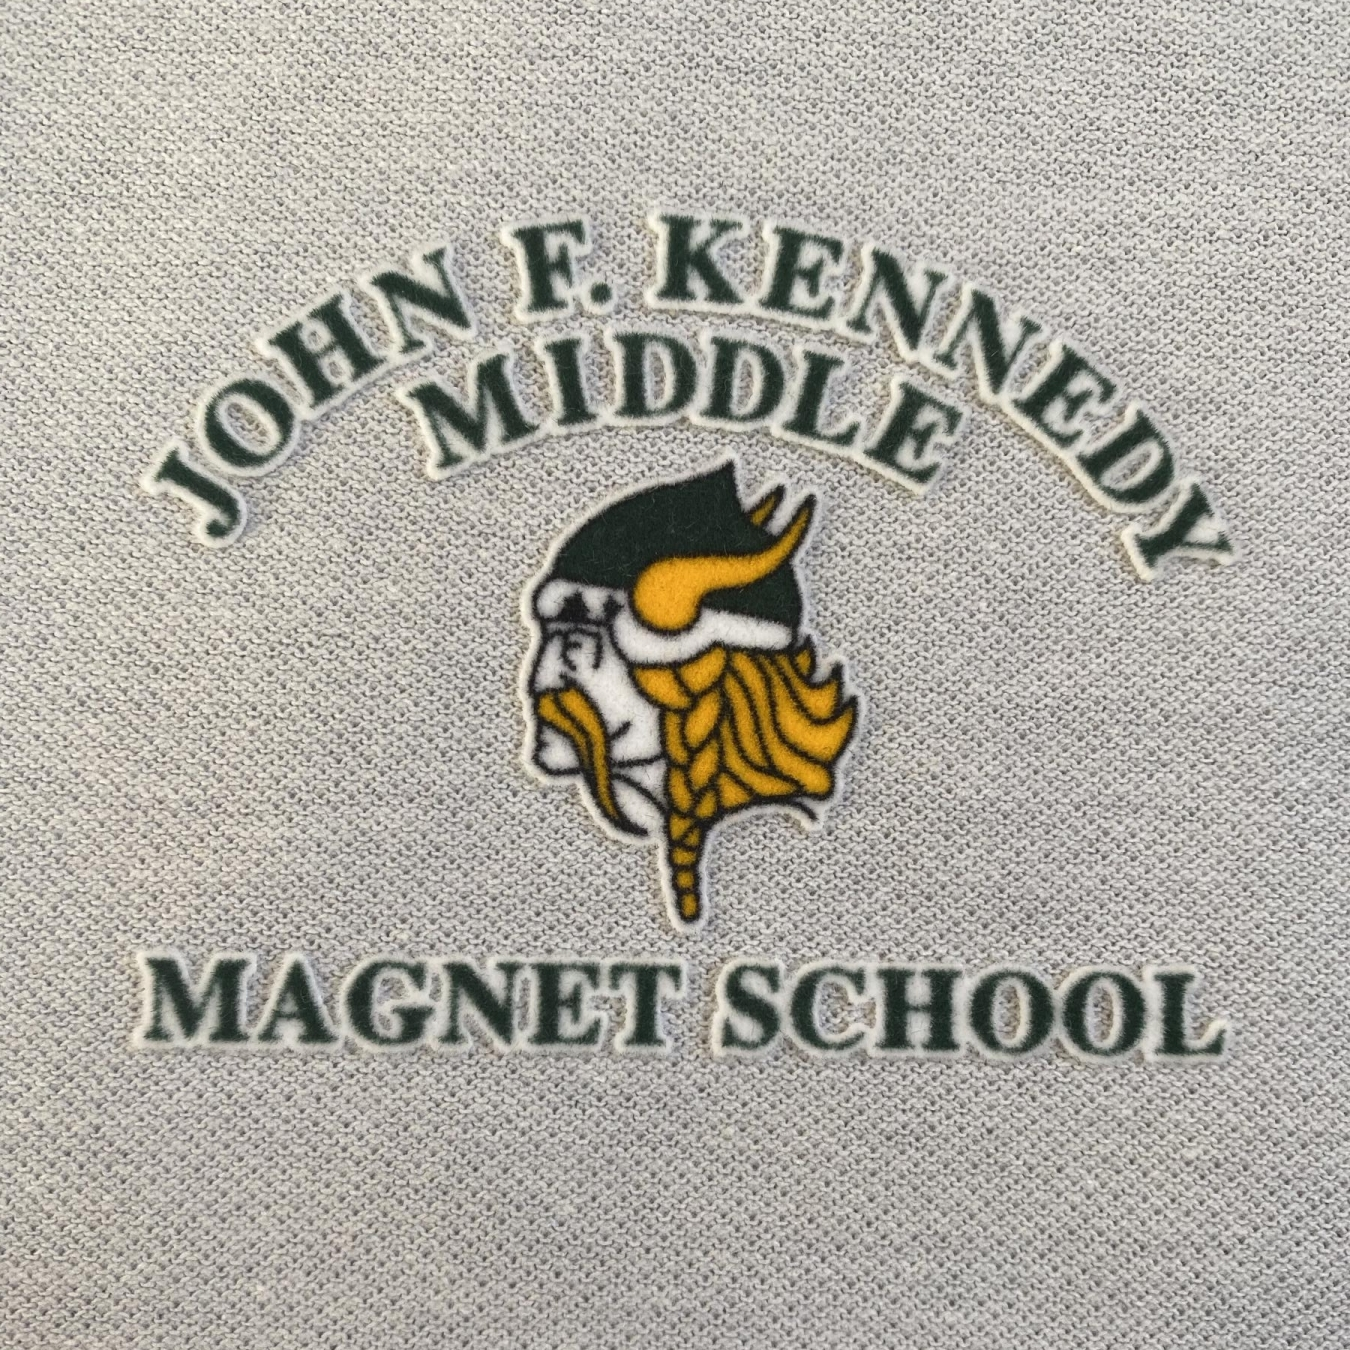 John F. Kennedy Middle Magnet School Patch